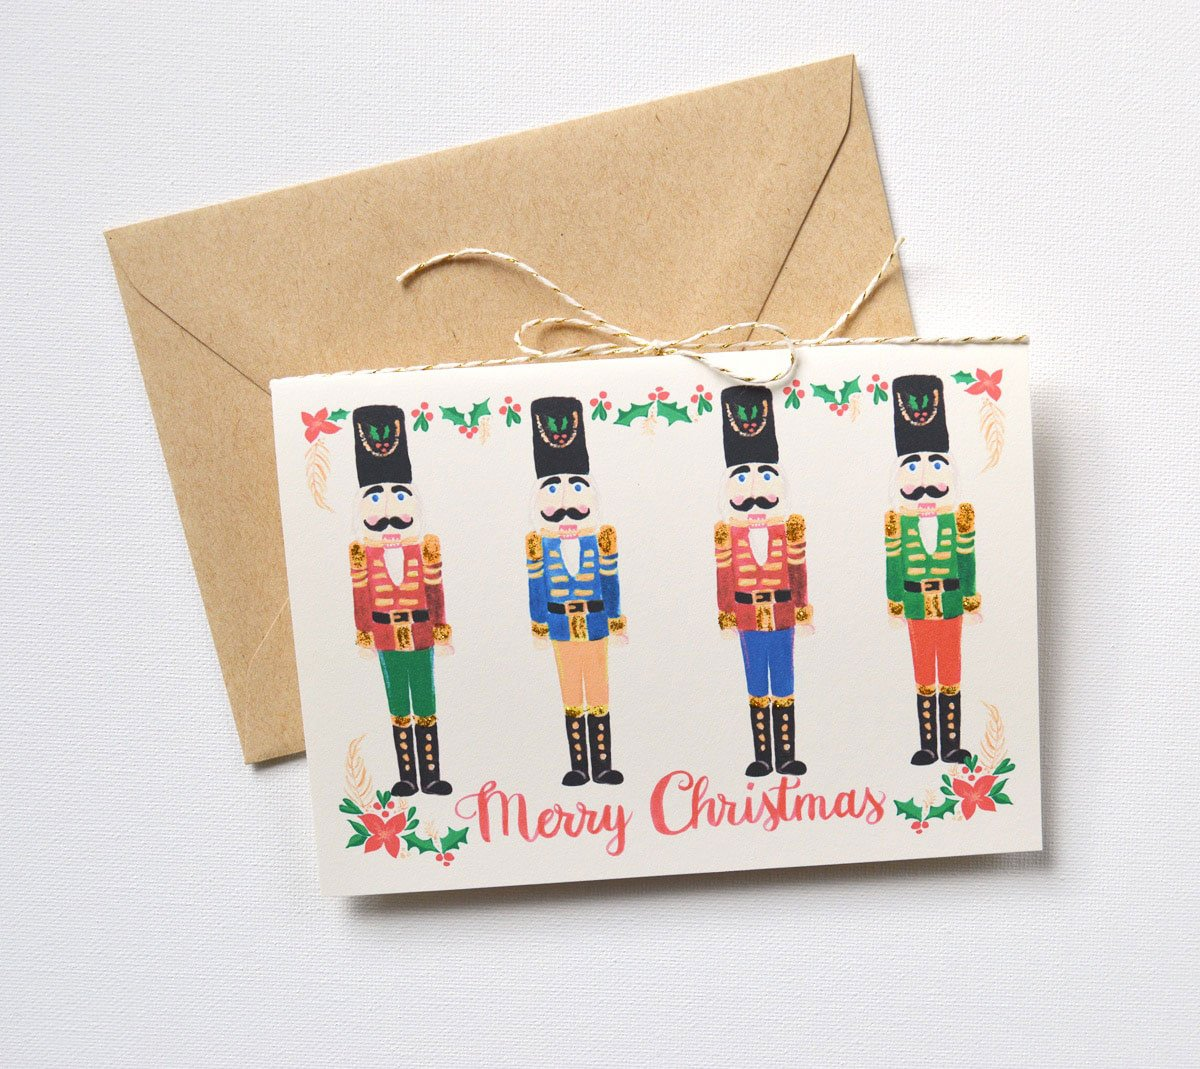 HANDMADE NUTCRACKER CHRISTMAS CARD